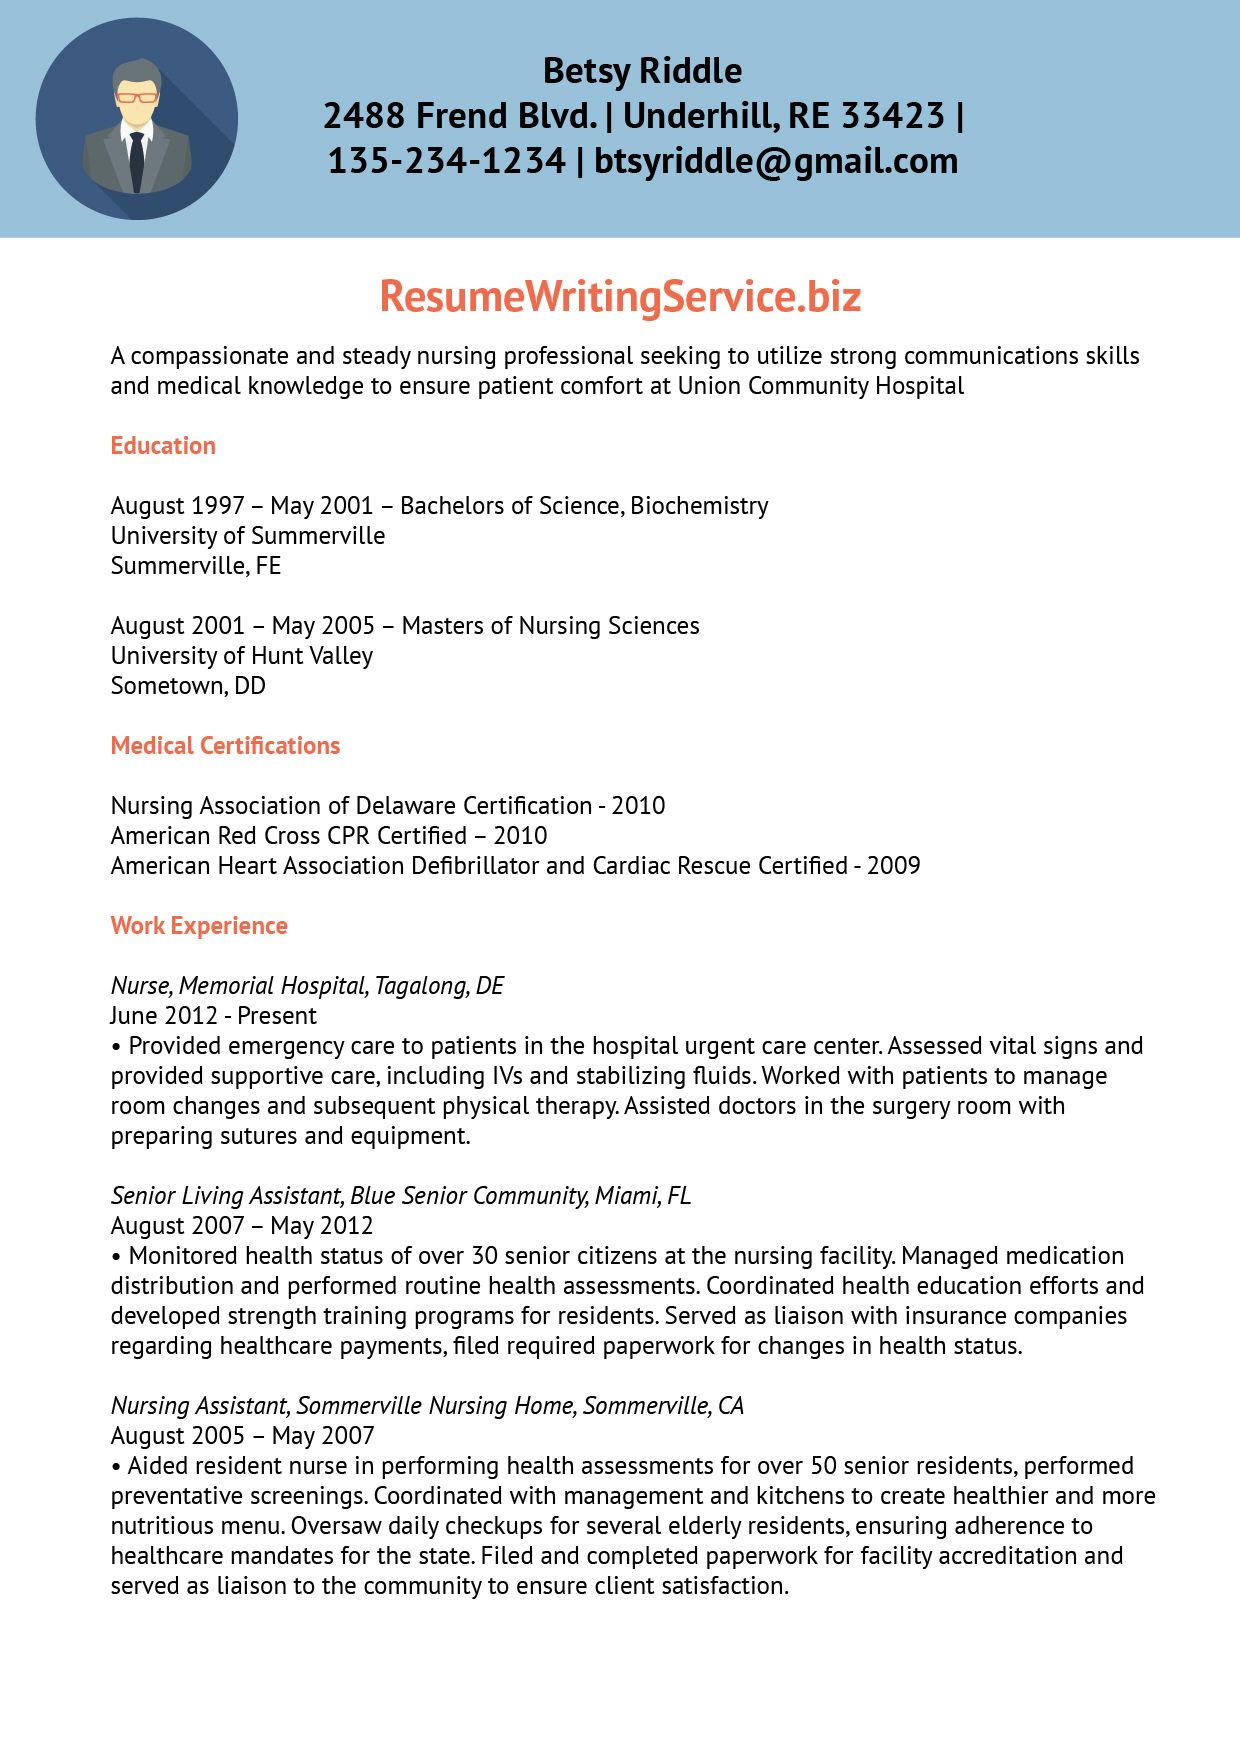 5 tips on how to make your nursing resume stand out